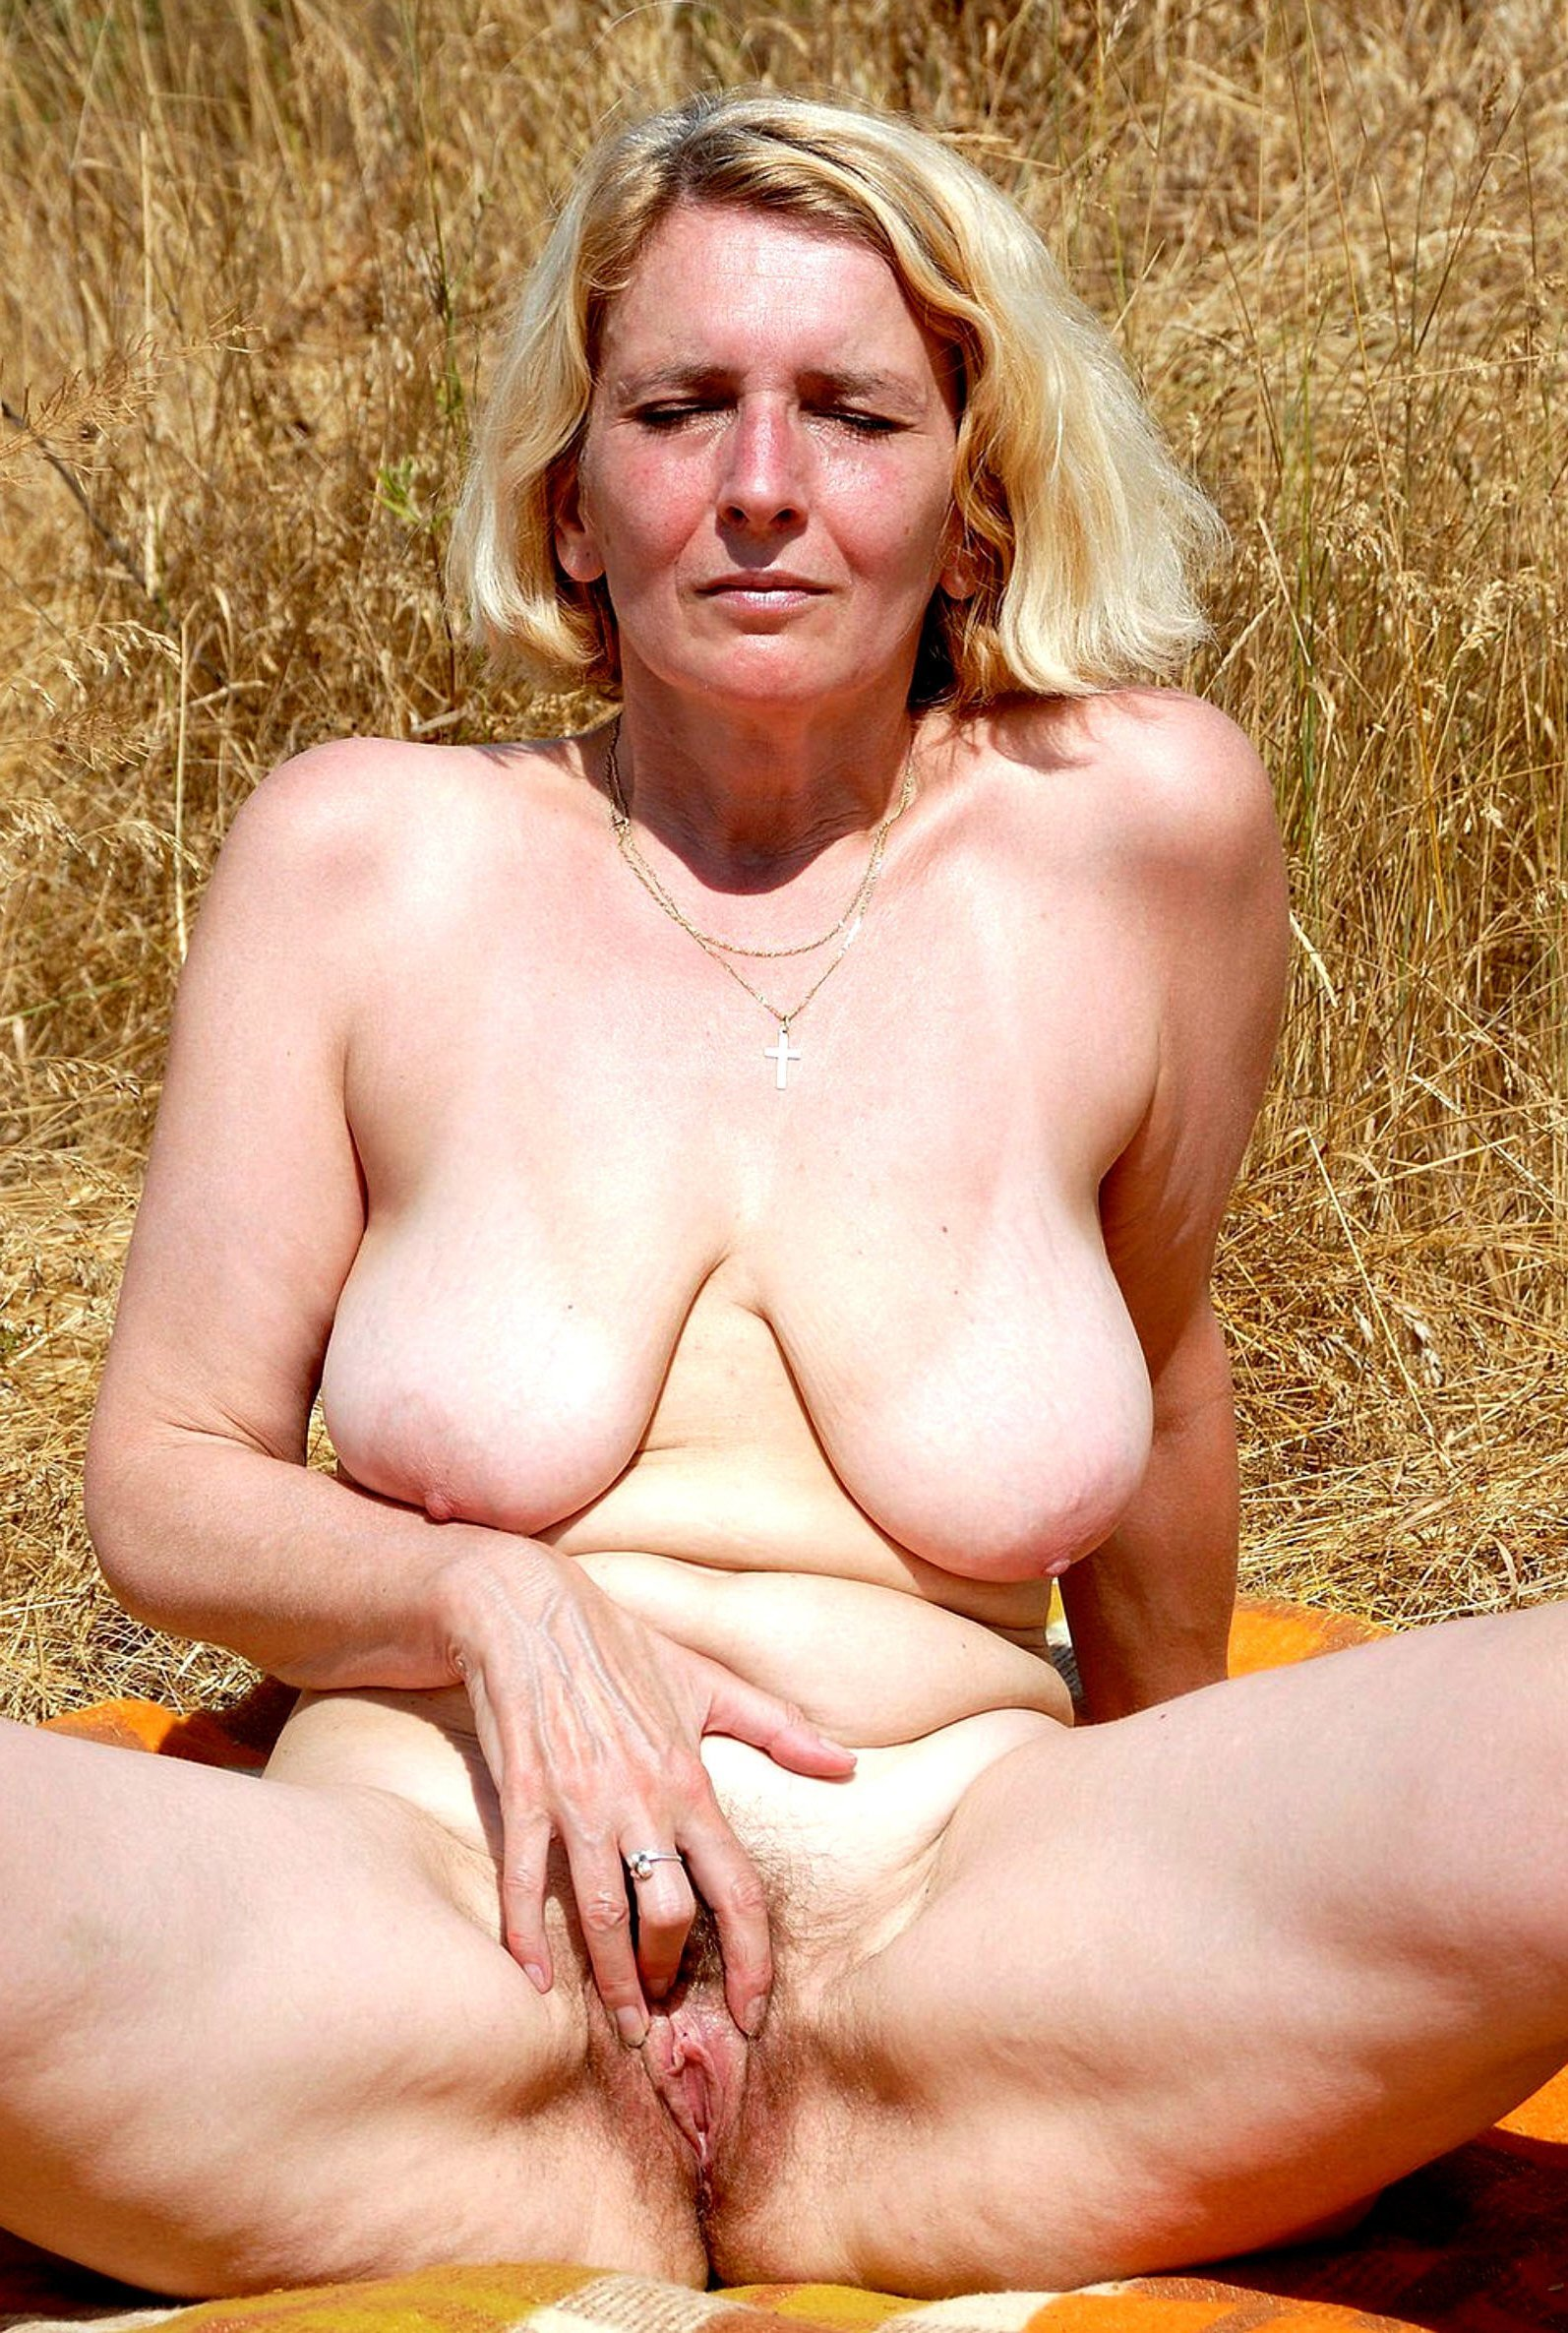 Outdoor Nature Nude Sex Pics